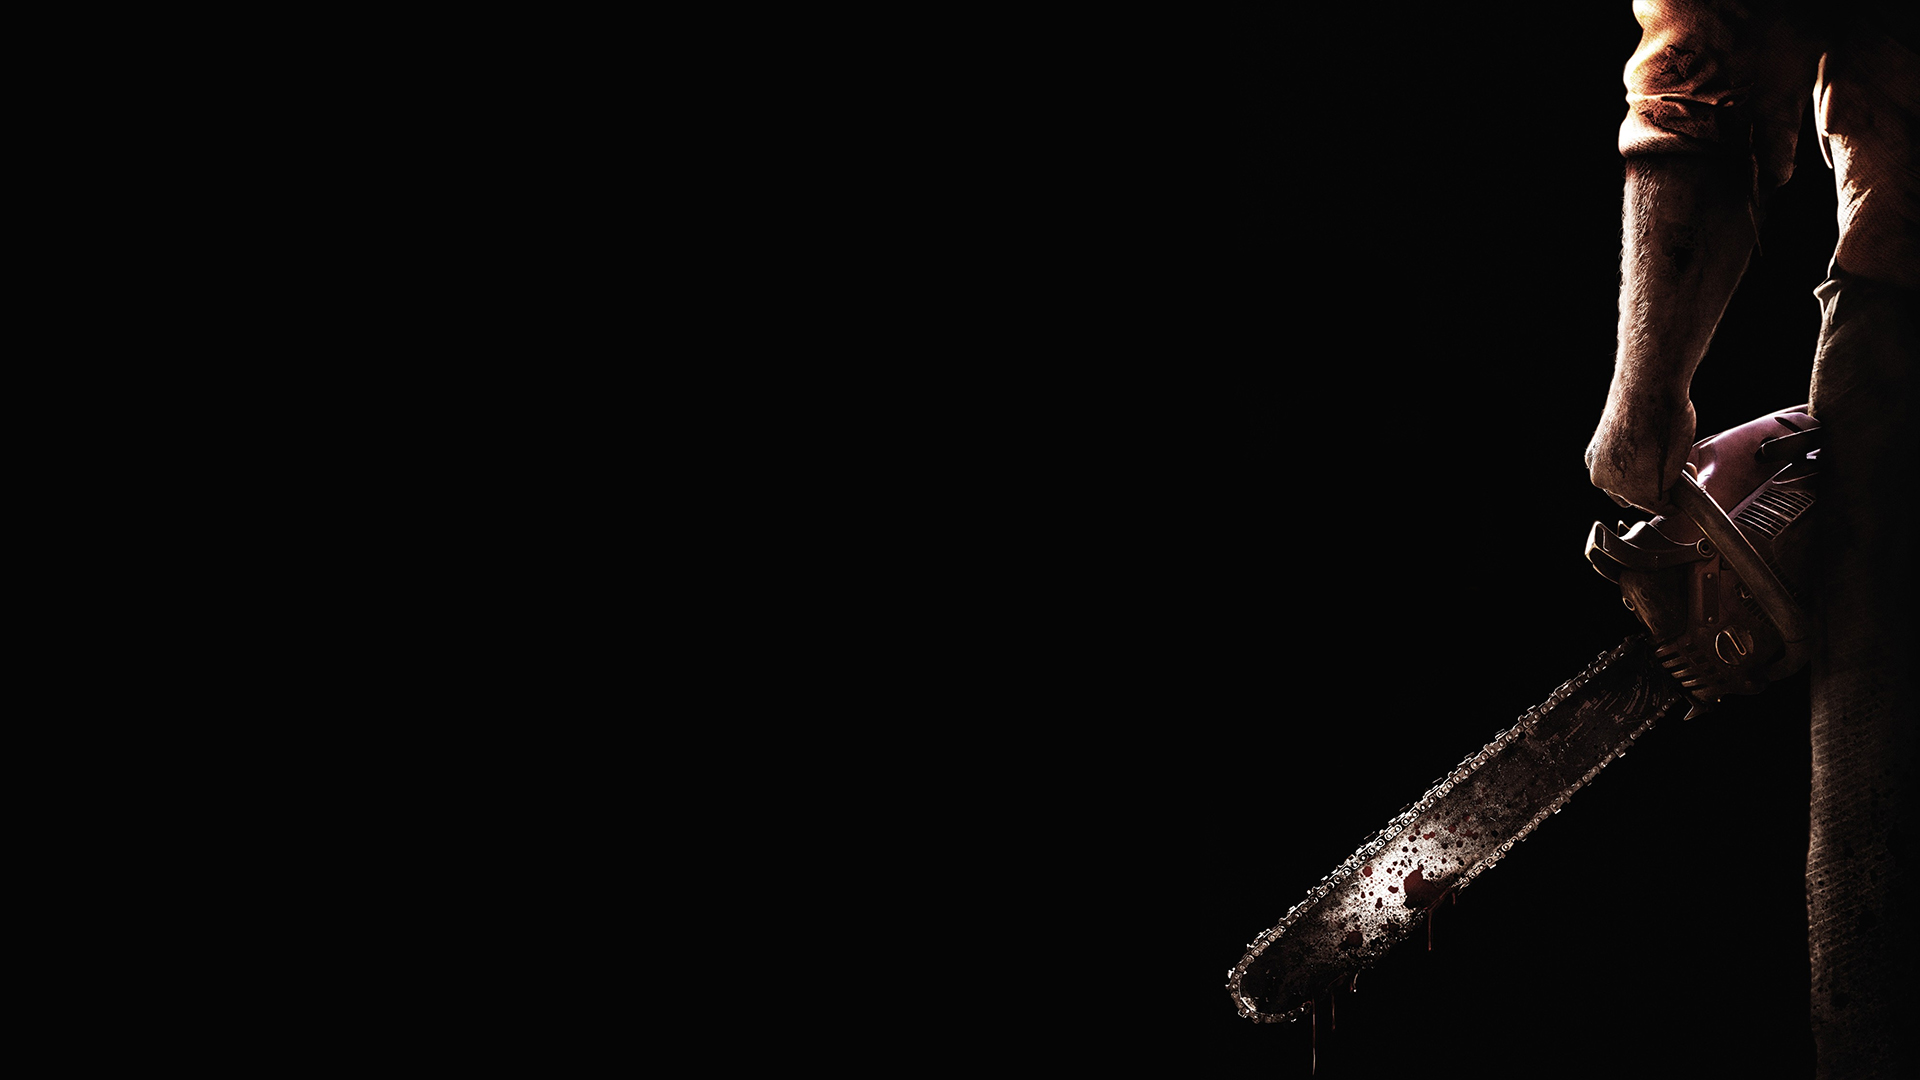 Texas Chainsaw 3d Hd Wallpaper Background Image